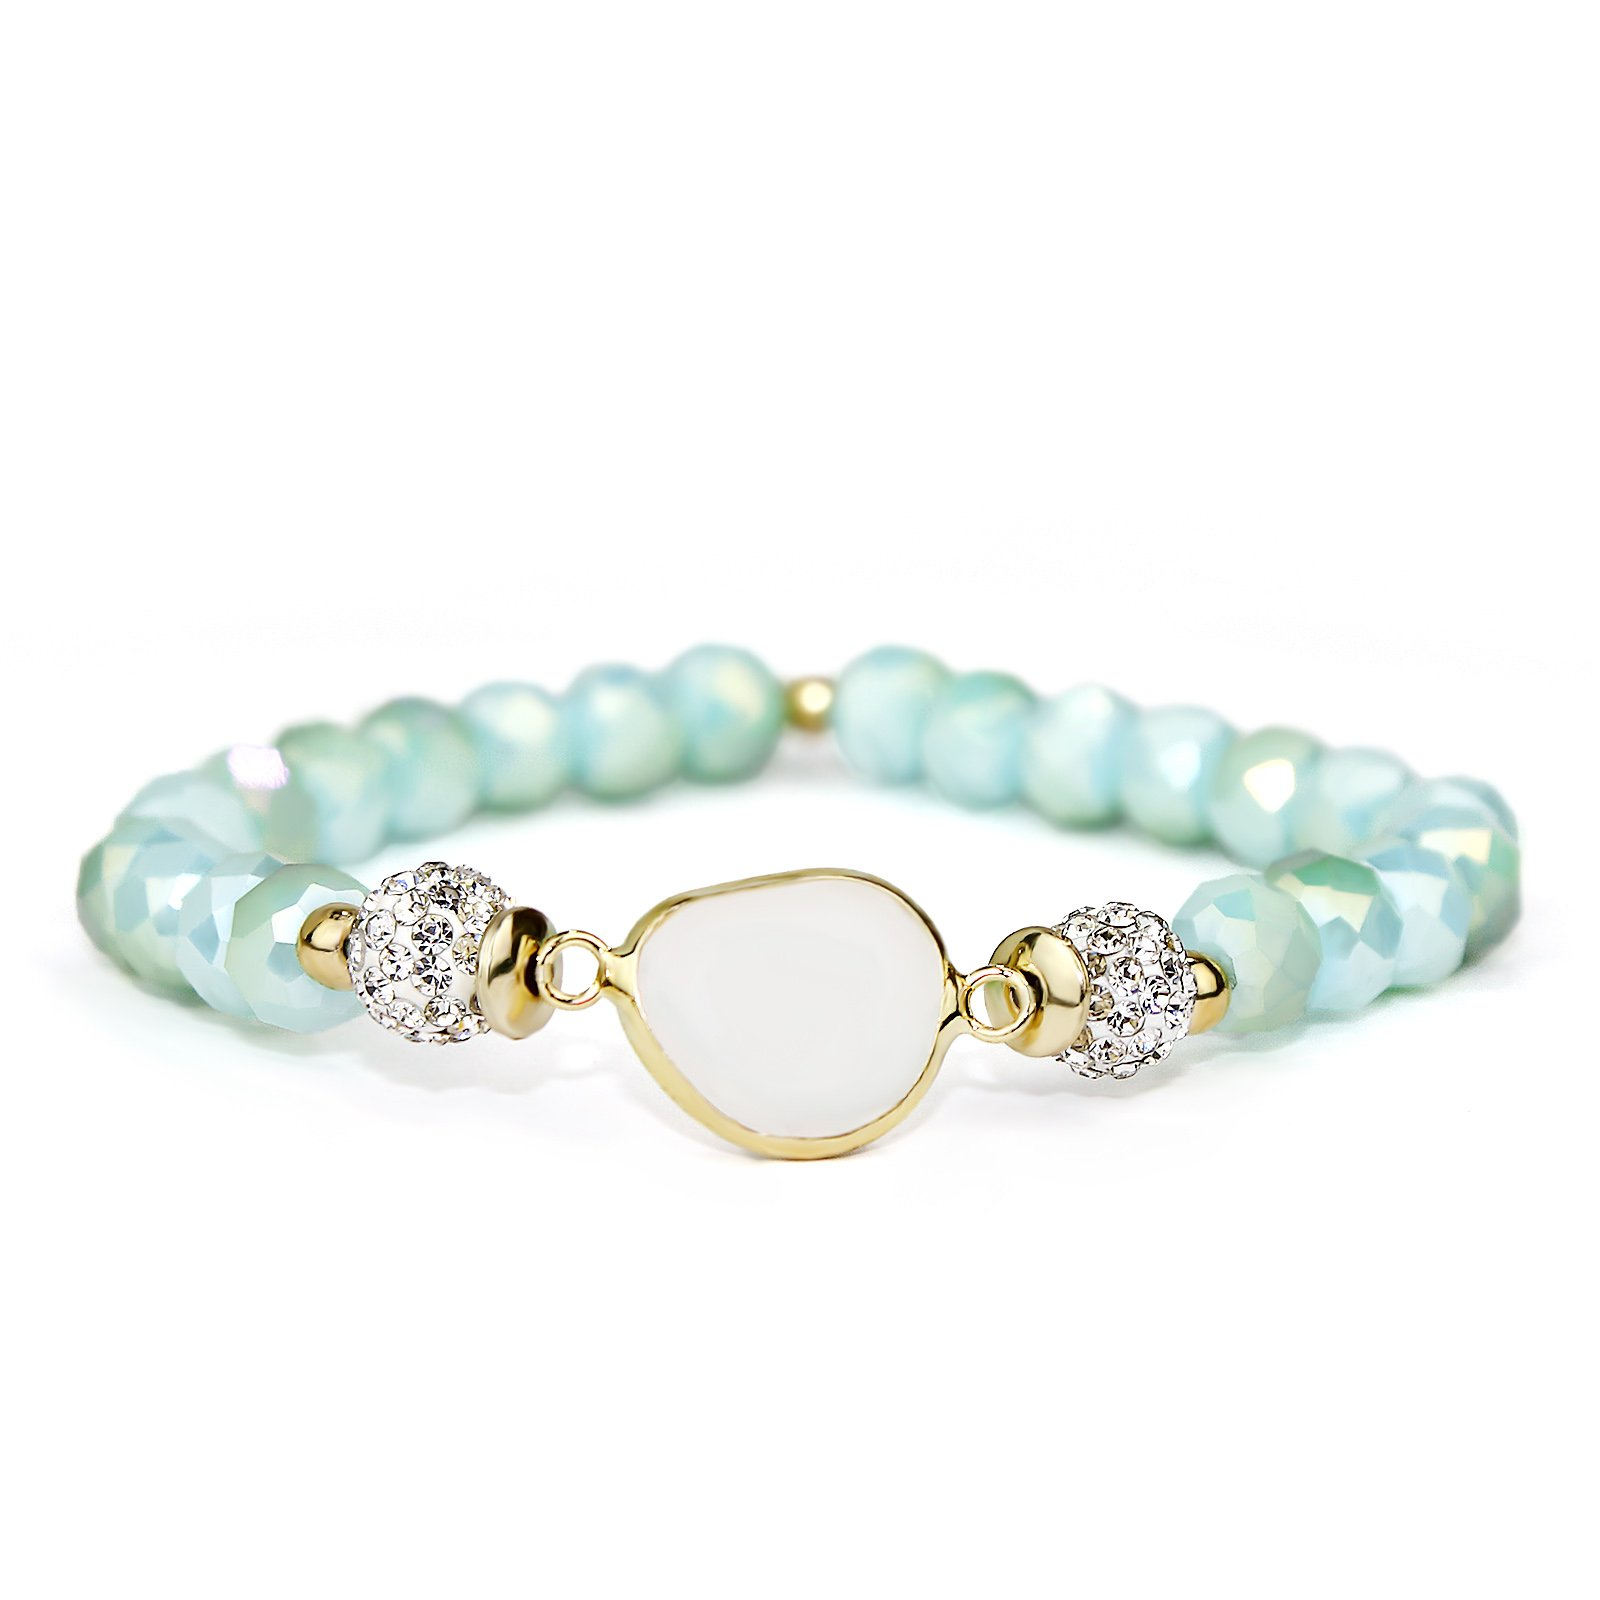 POMINA Faceted Glass Beaded Stretch Bracelets with Multi Pave Balls for Women (Mint)